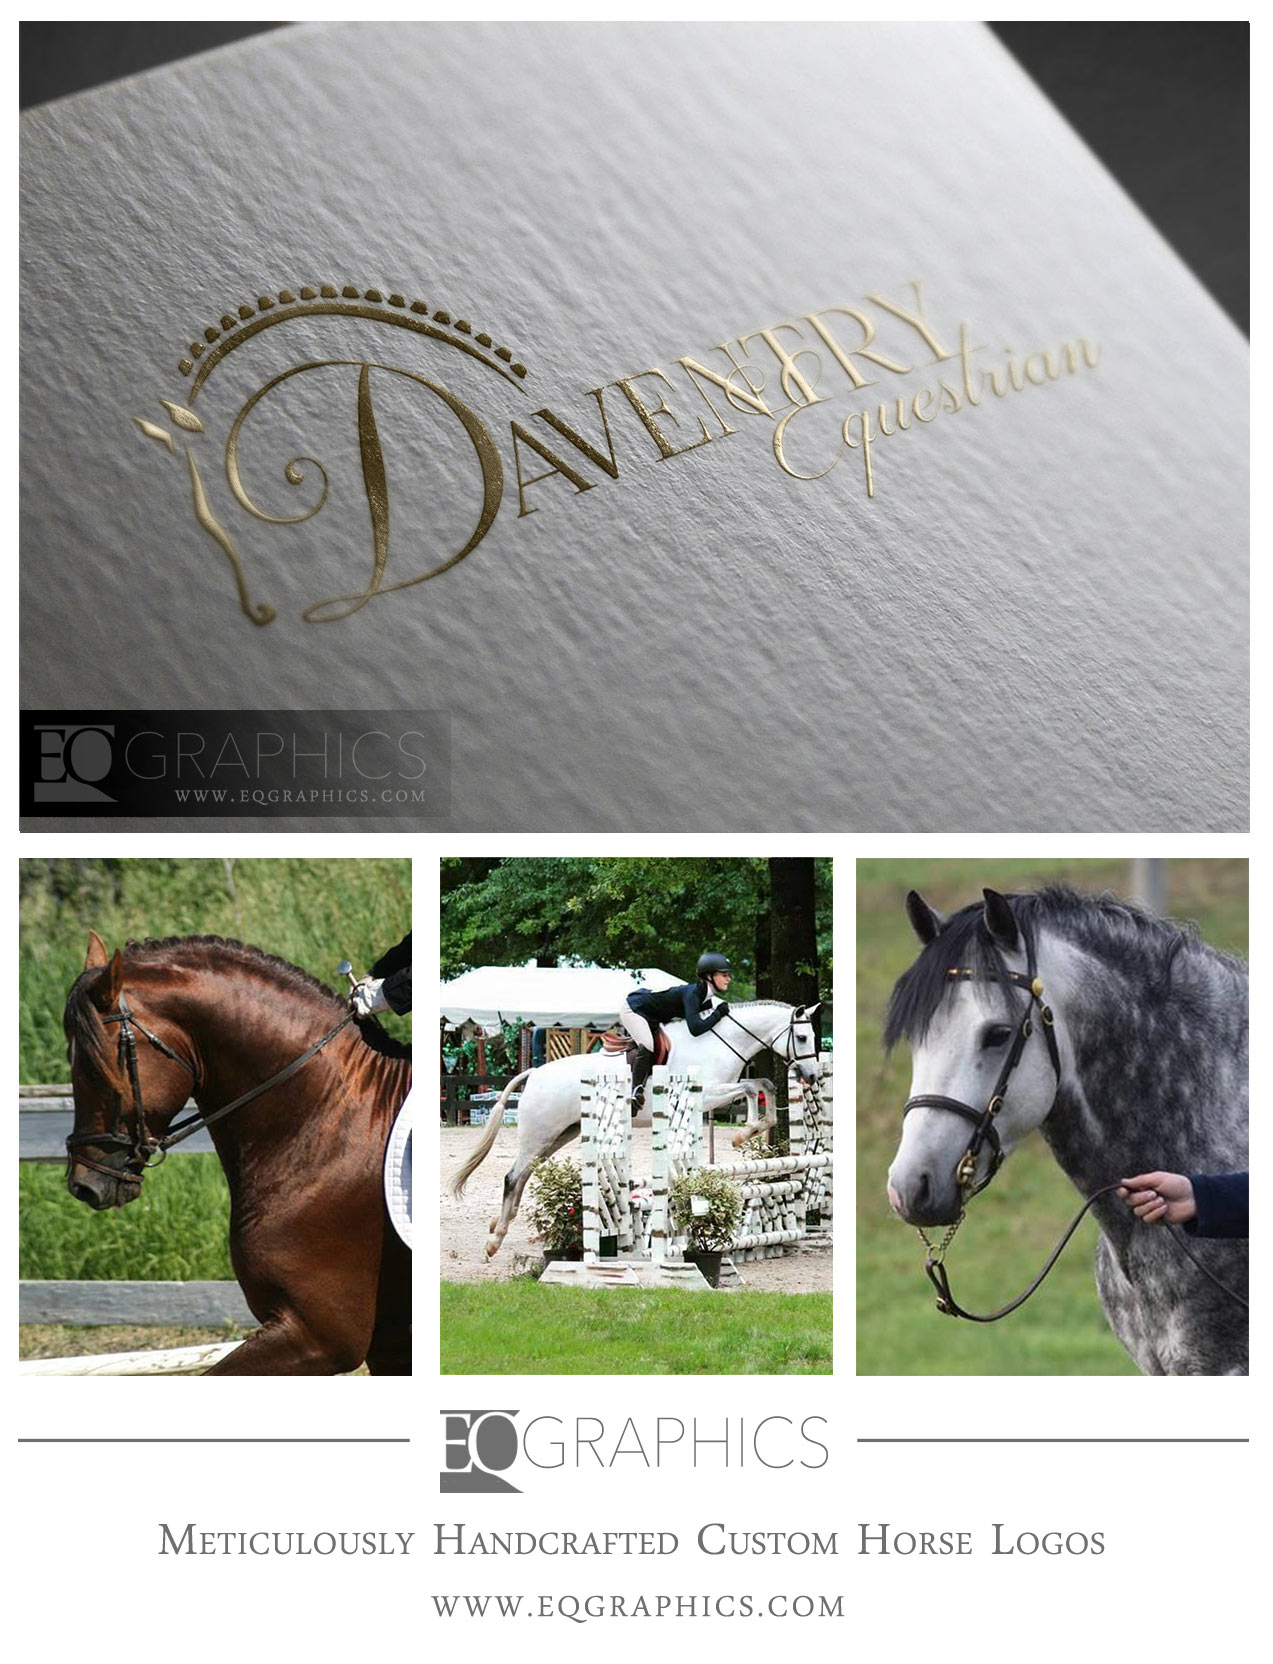 Daventry Handcrafted Farm Logo by EQ Graphics Equestrian Design